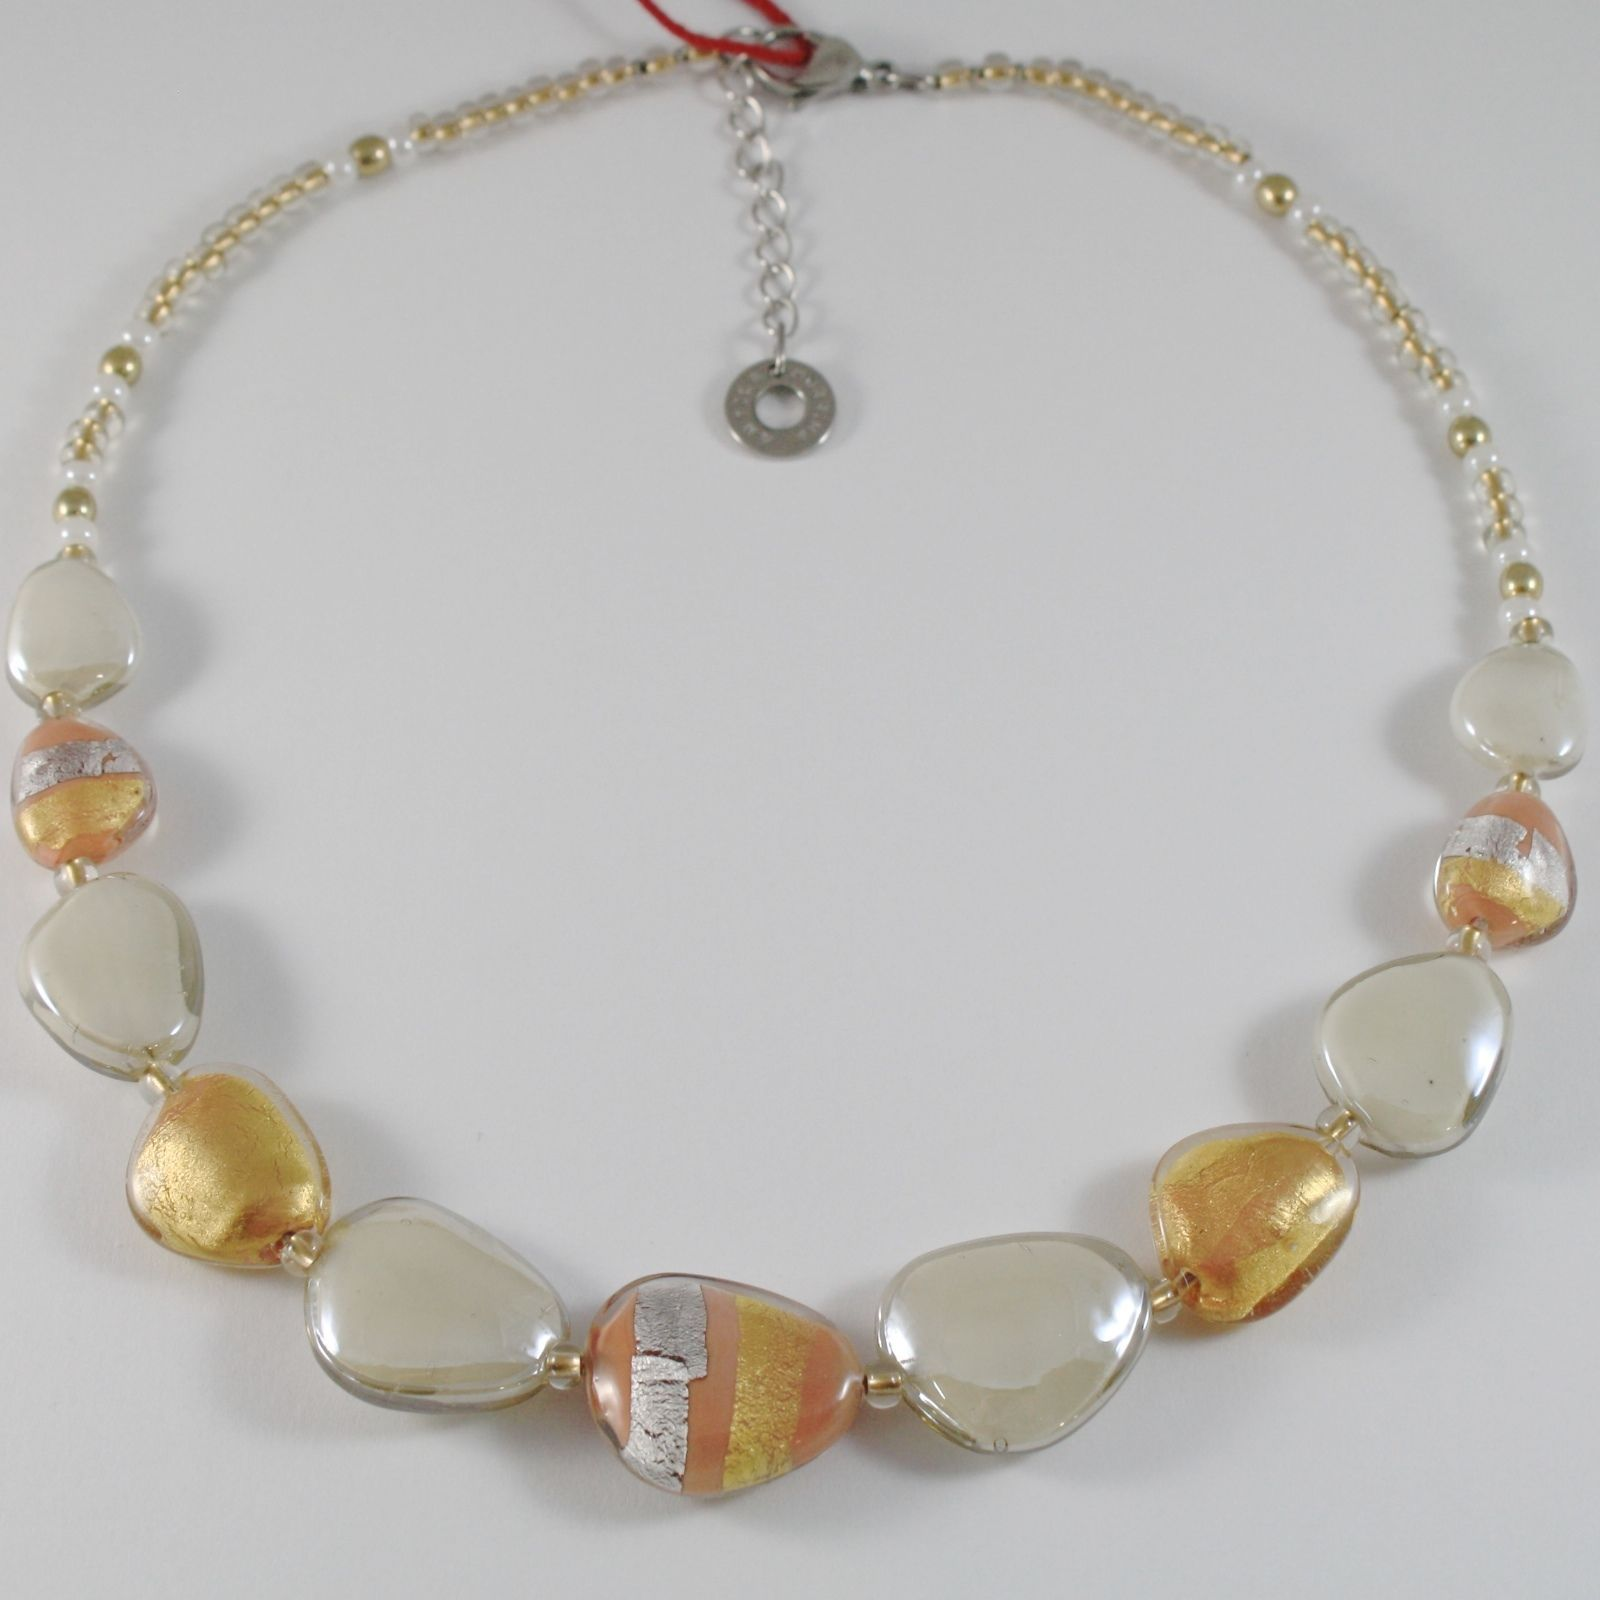 ANTICA MURRINA VENEZIA STRIPED NECKLACE, SAND BEIGE SILVER AND GOLD FLAT DROPS